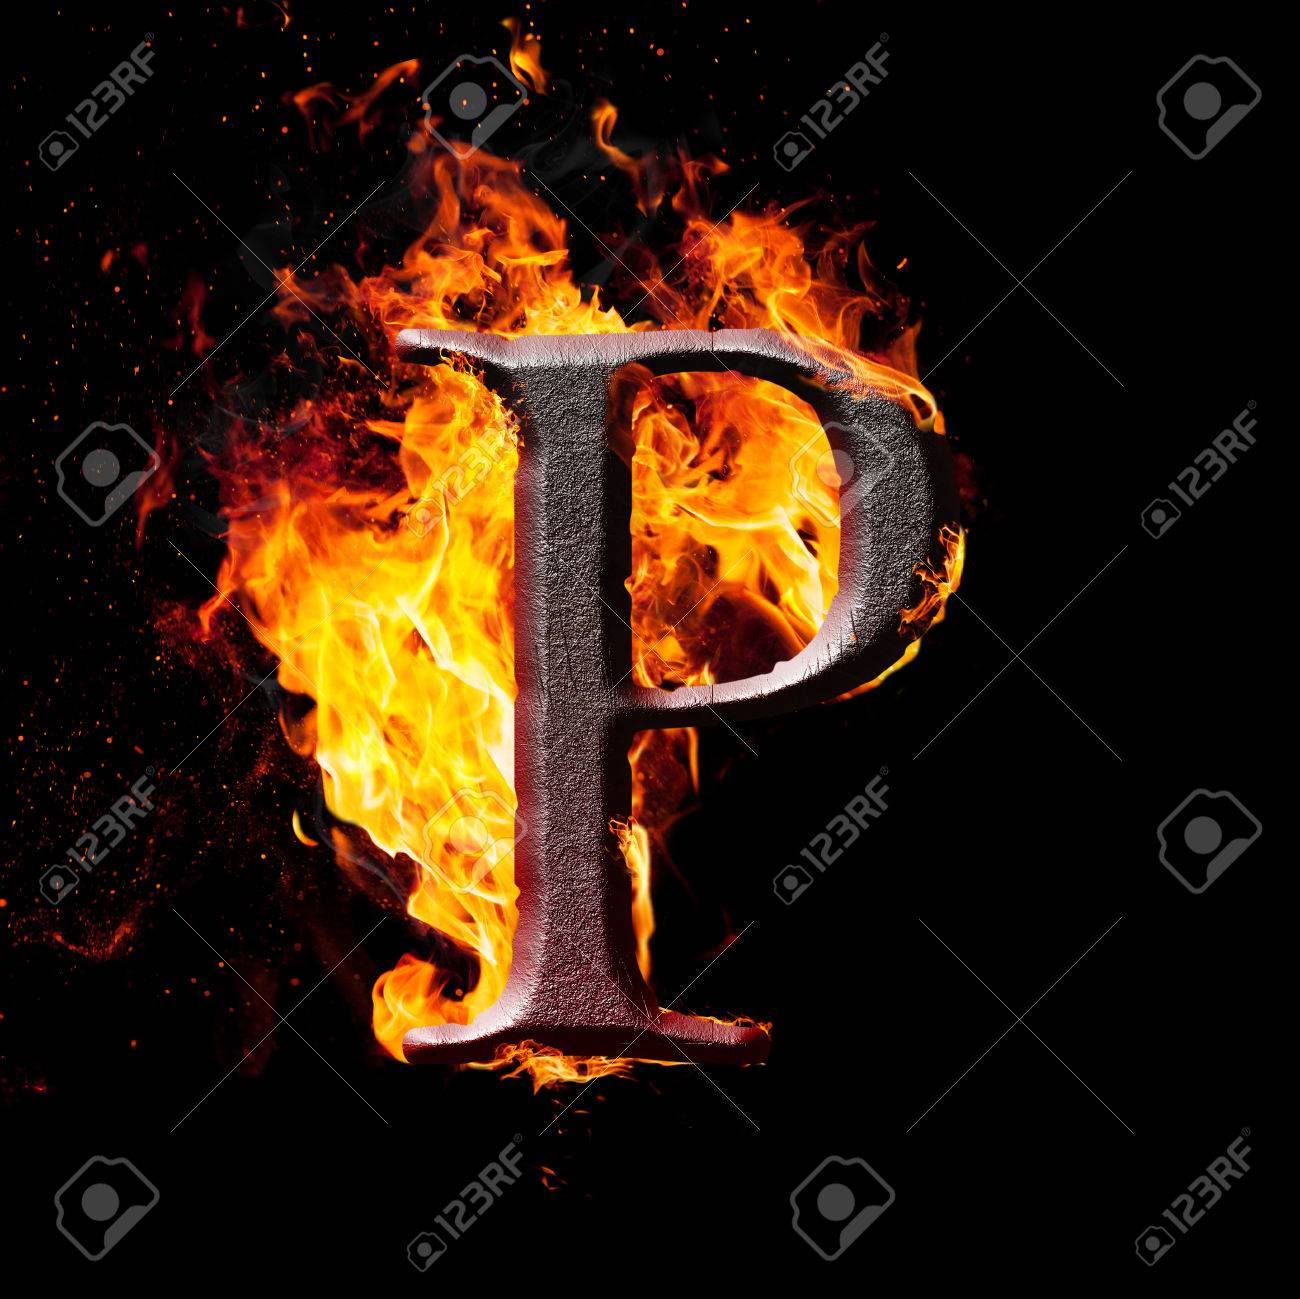 P Letter Images.Letters And Symbols In Fire Letter P